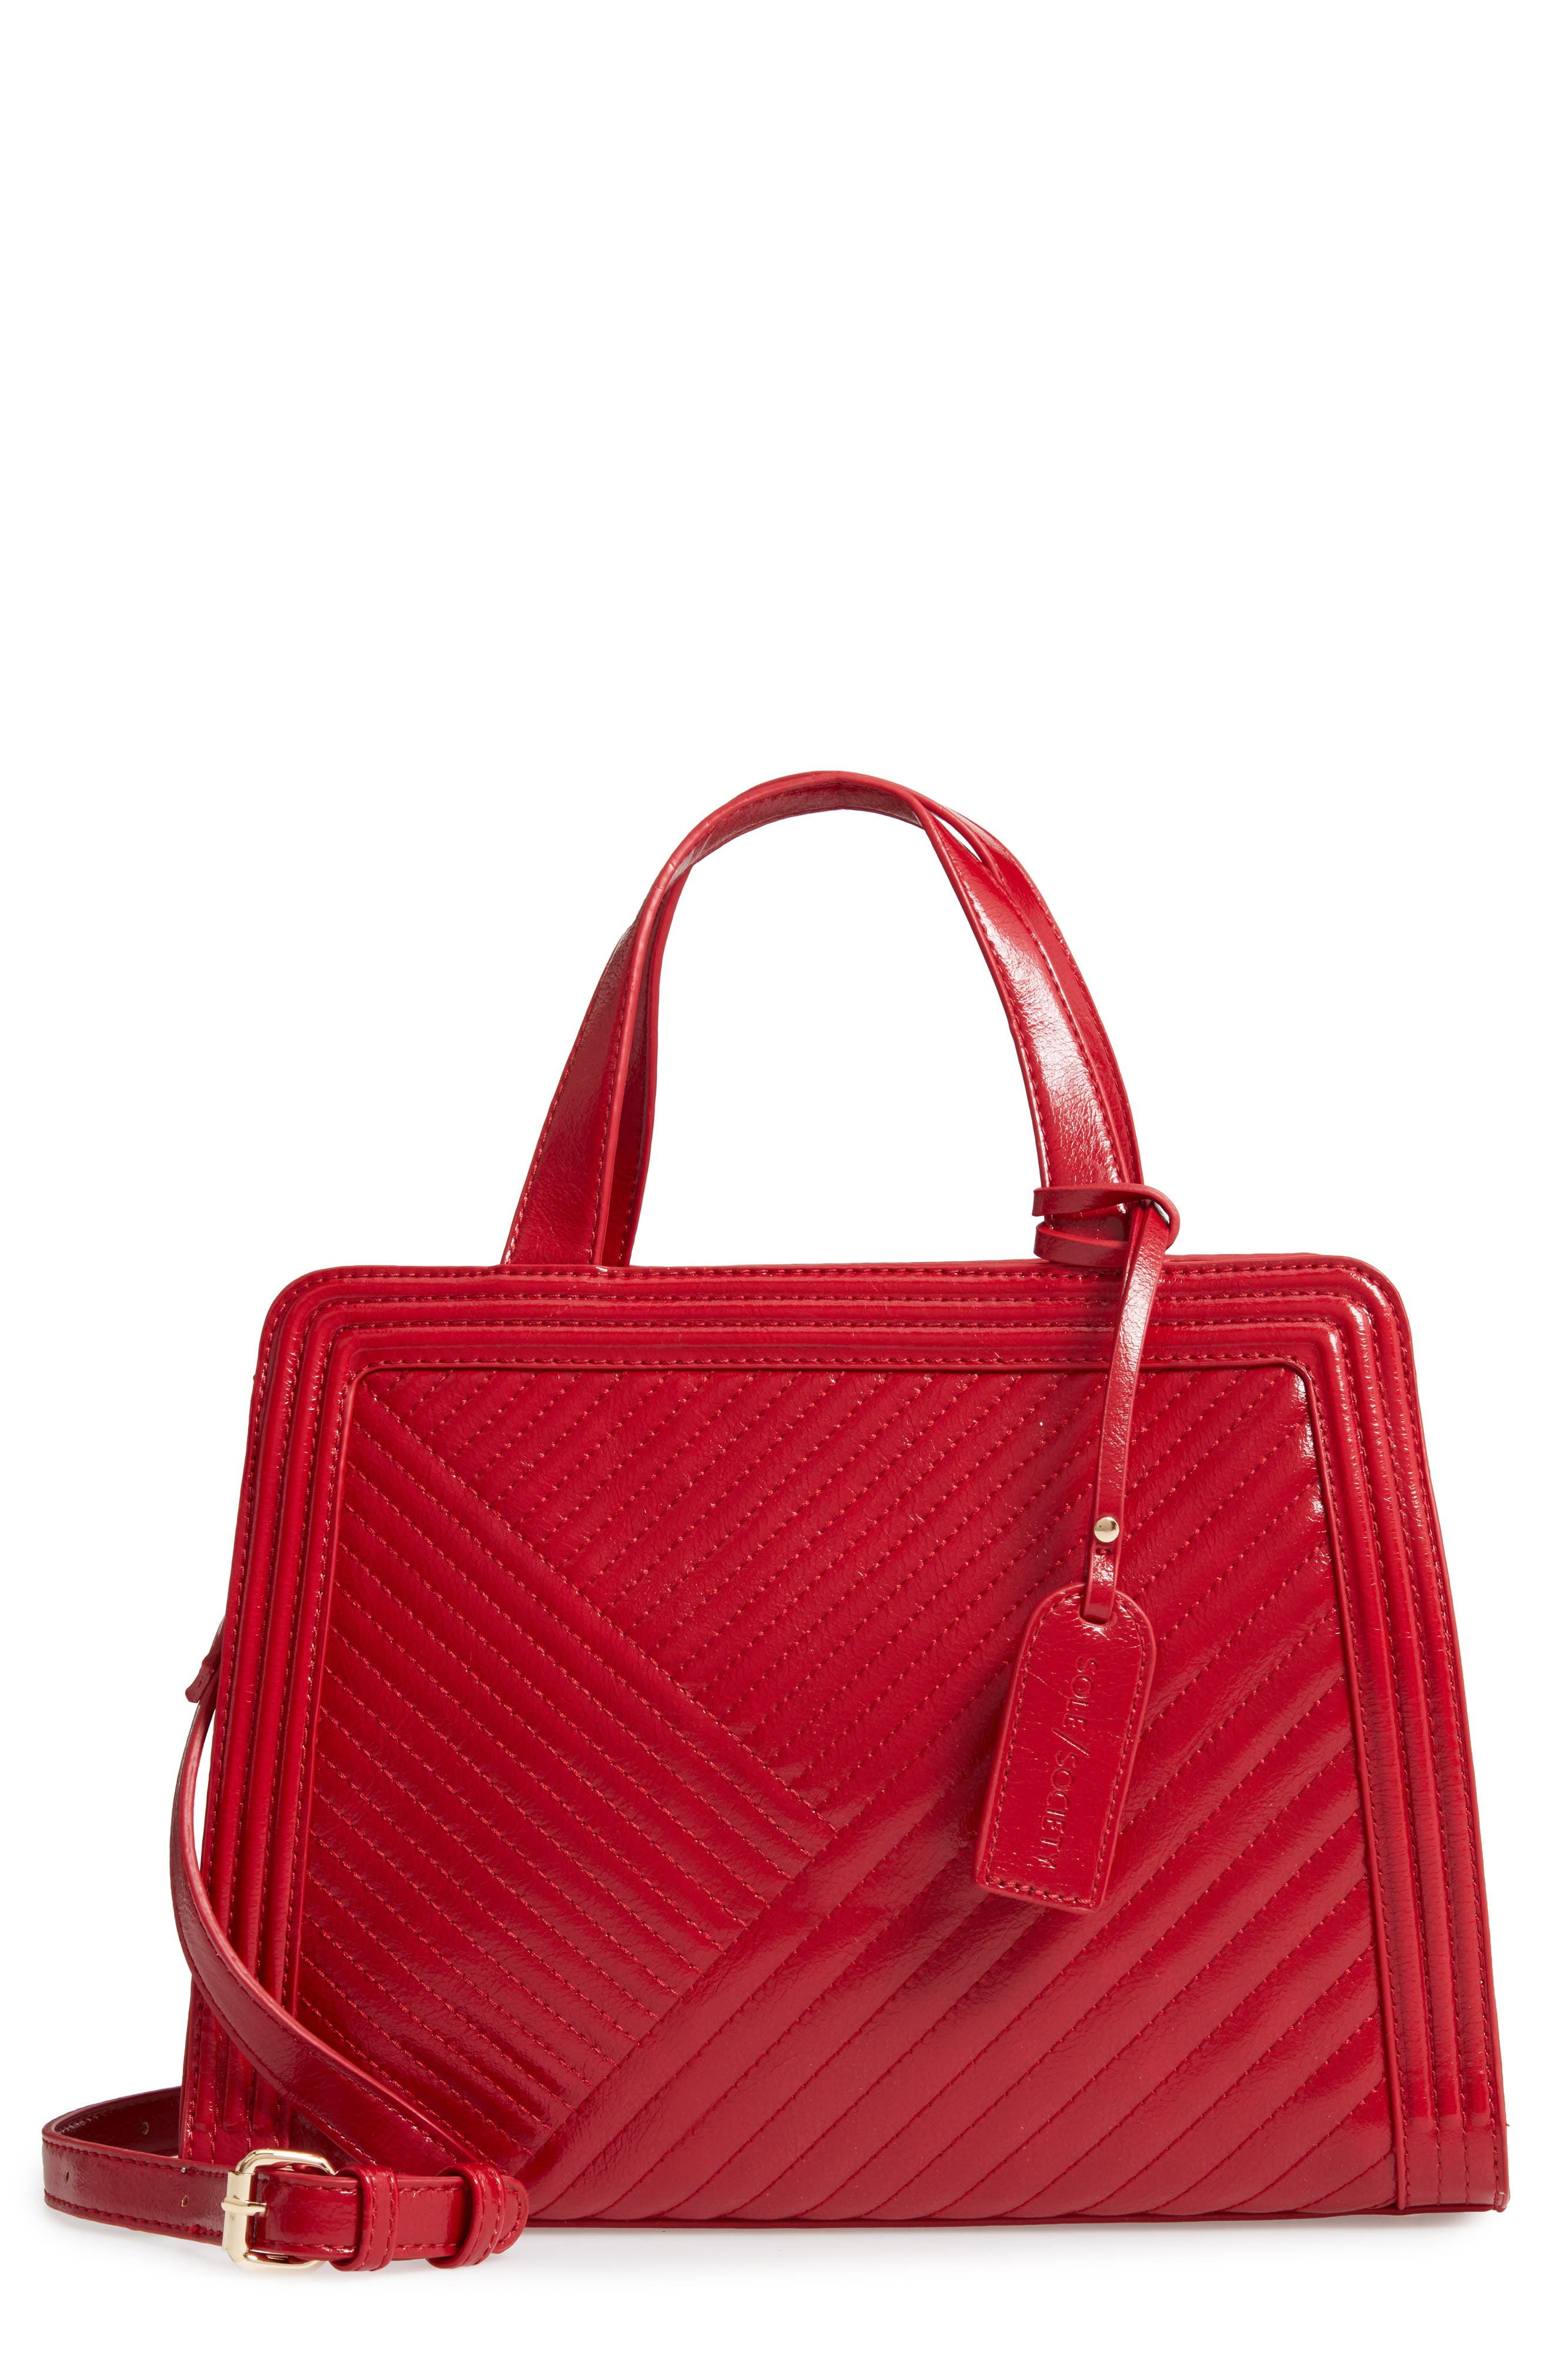 SOLE SOCIETY Aisln Faux Leather Satchel, Main, color, RED